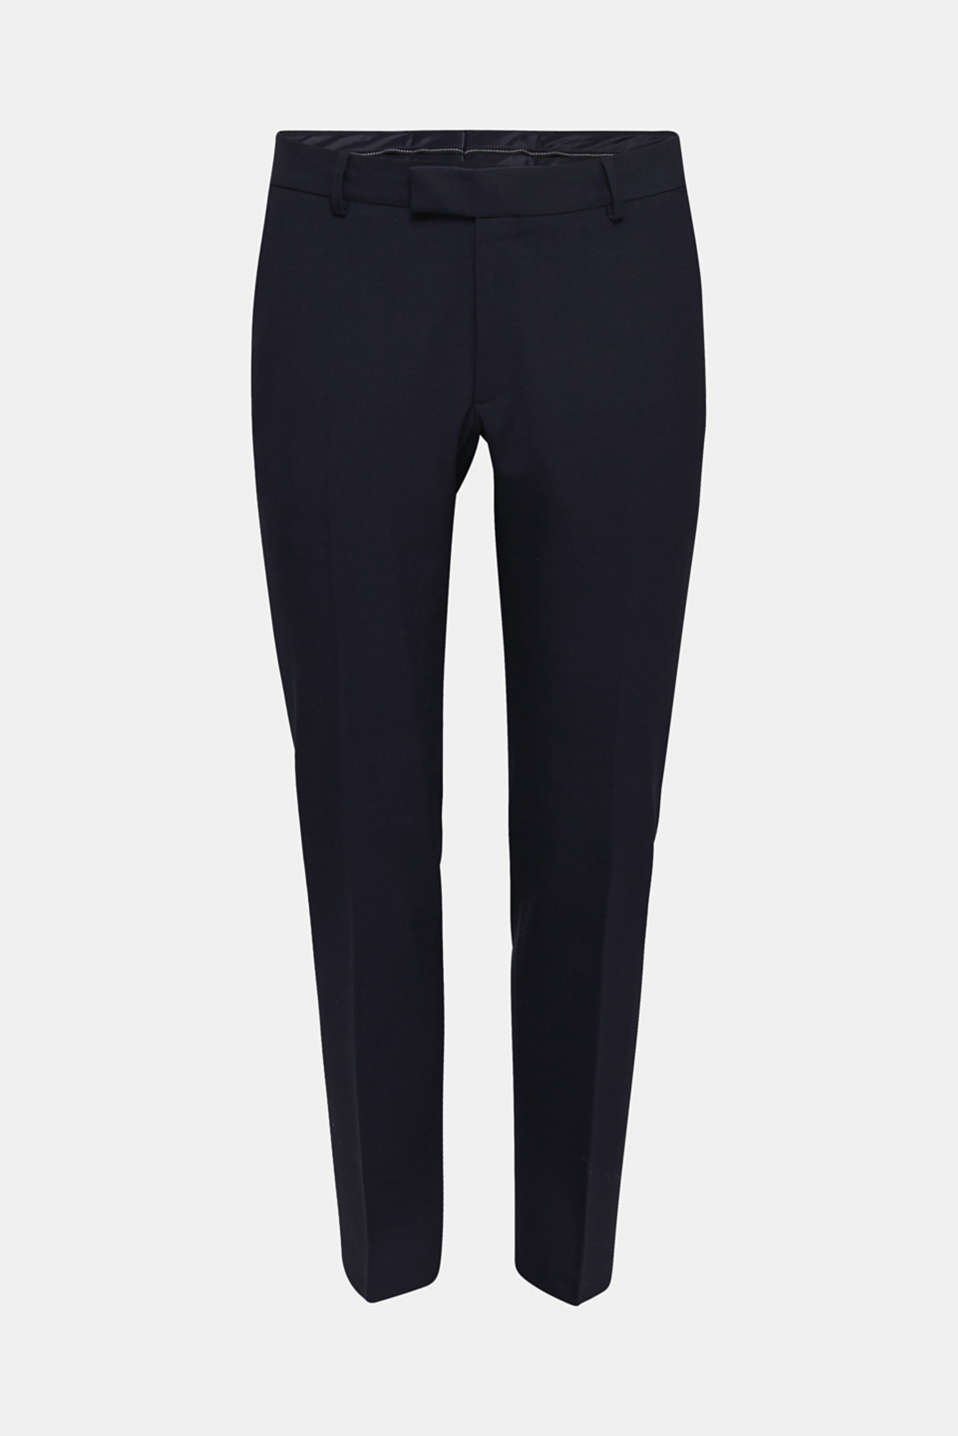 ACTIVE SUIT trousers made of blended wool, DARK BLUE, detail image number 5